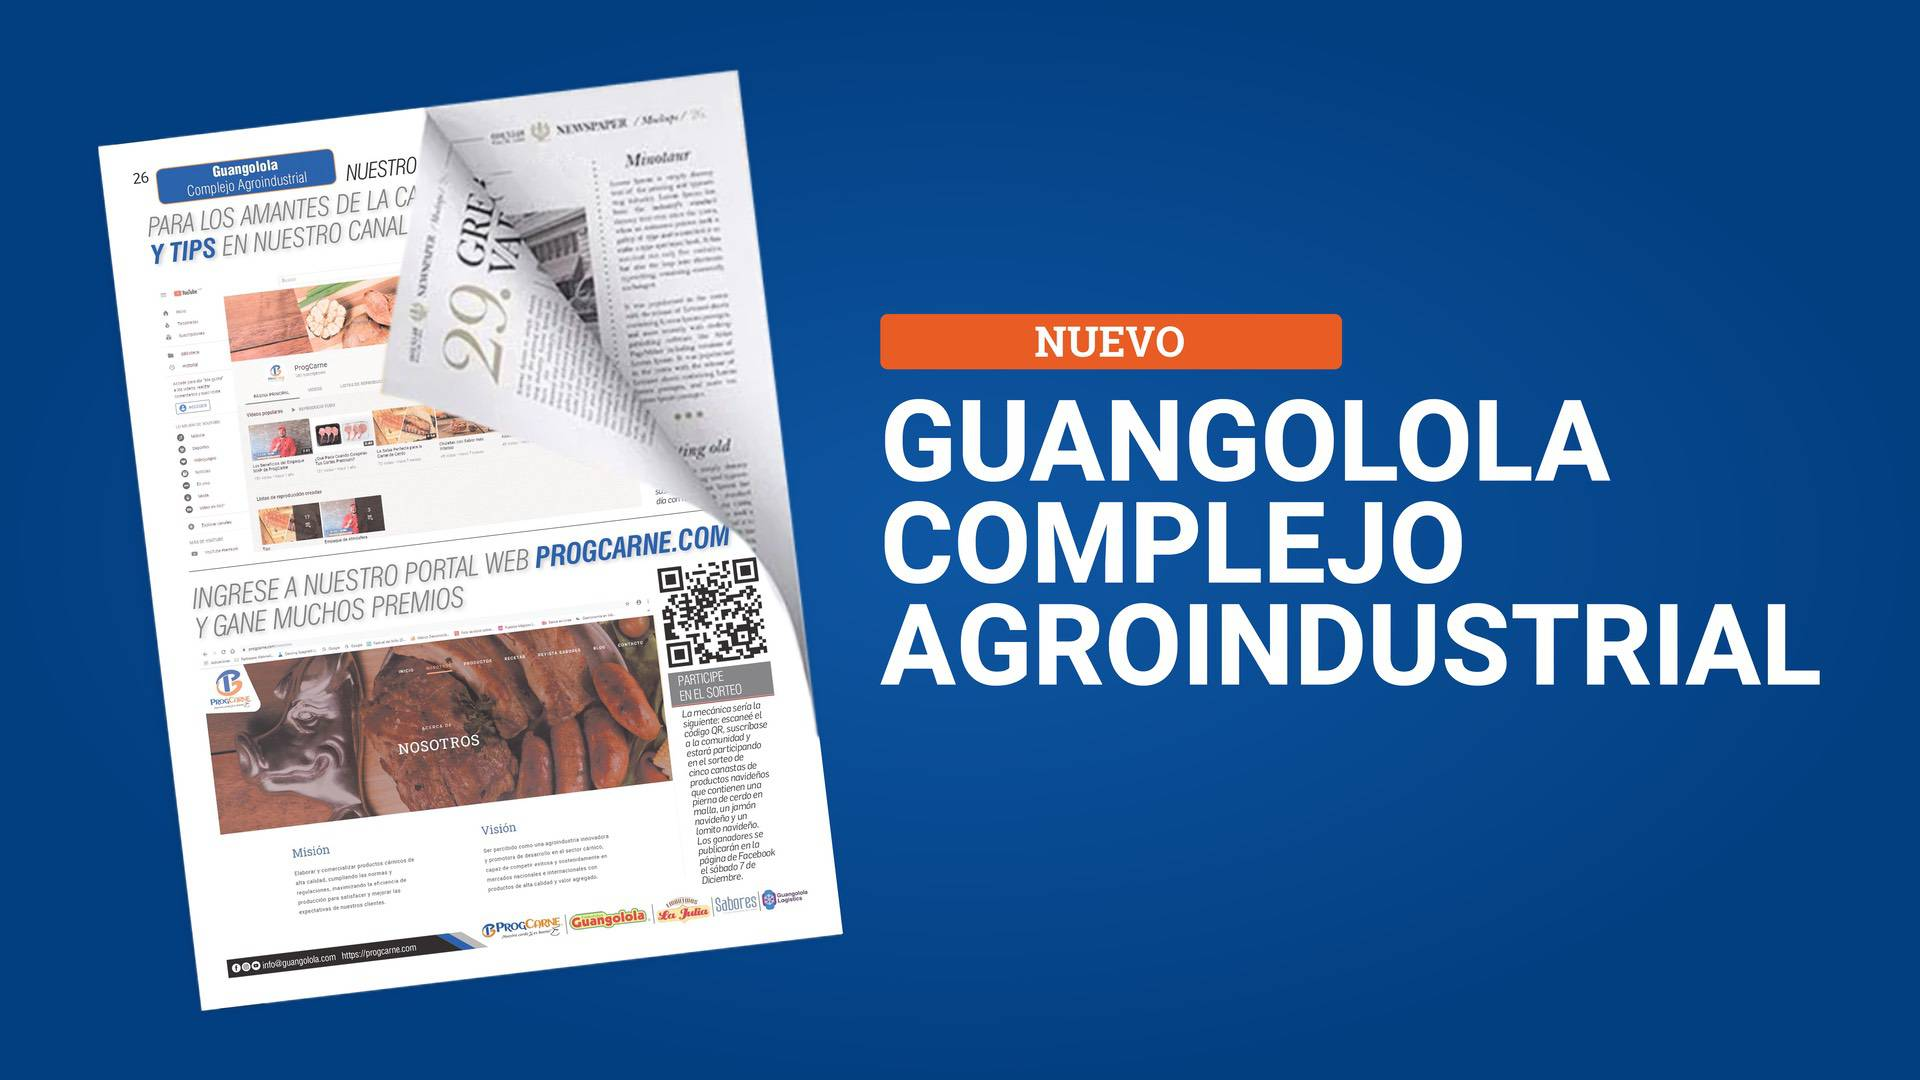 Nuevo Guangolola Complejo Agroindrustial